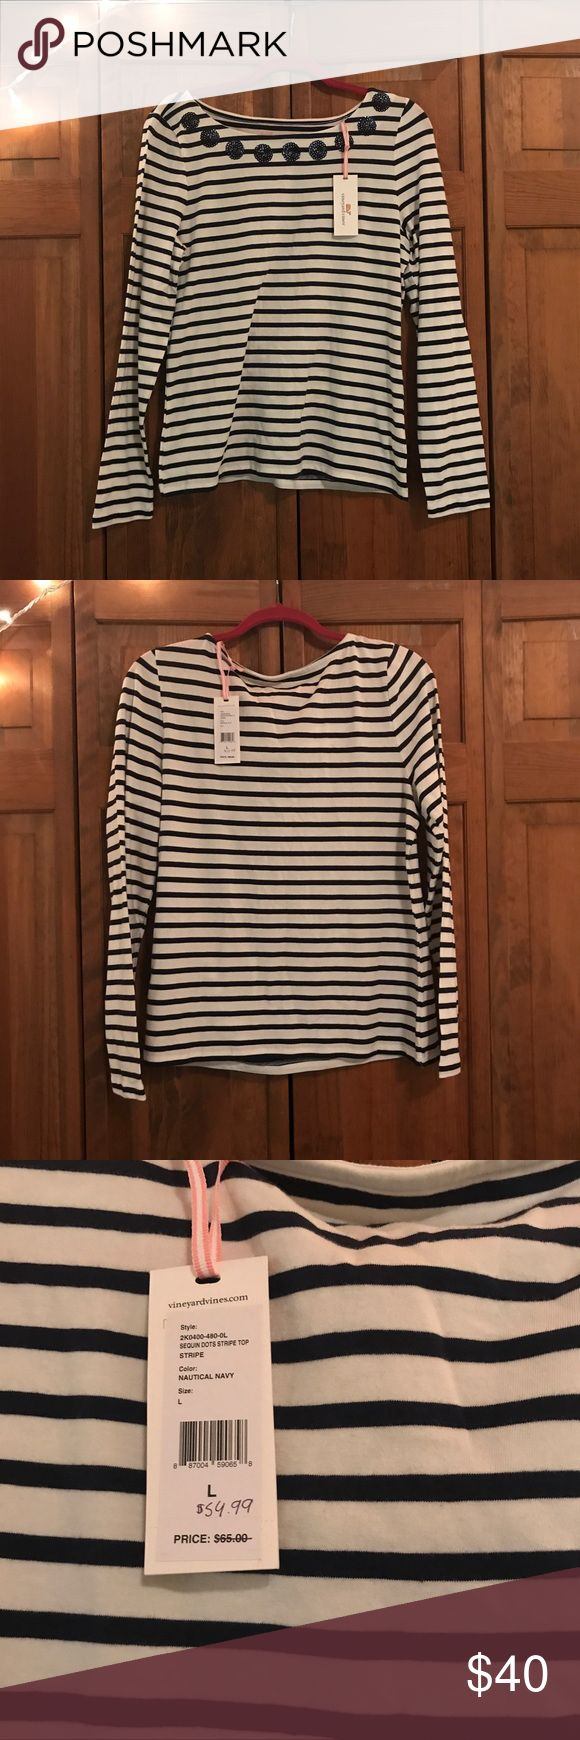 Vineyard Vines Navy/White Striped Long Sleeve NWT Vineyard Vines Size: Large, Color: Nautical Navy, Striped Long Sleeve Top New with Tags. Sequin embellishments along neckline in navy blue. Never been worn, completely new. 96% Cotton, 4% Spandex Vineyard Vines Tops Tees - Short Sleeve